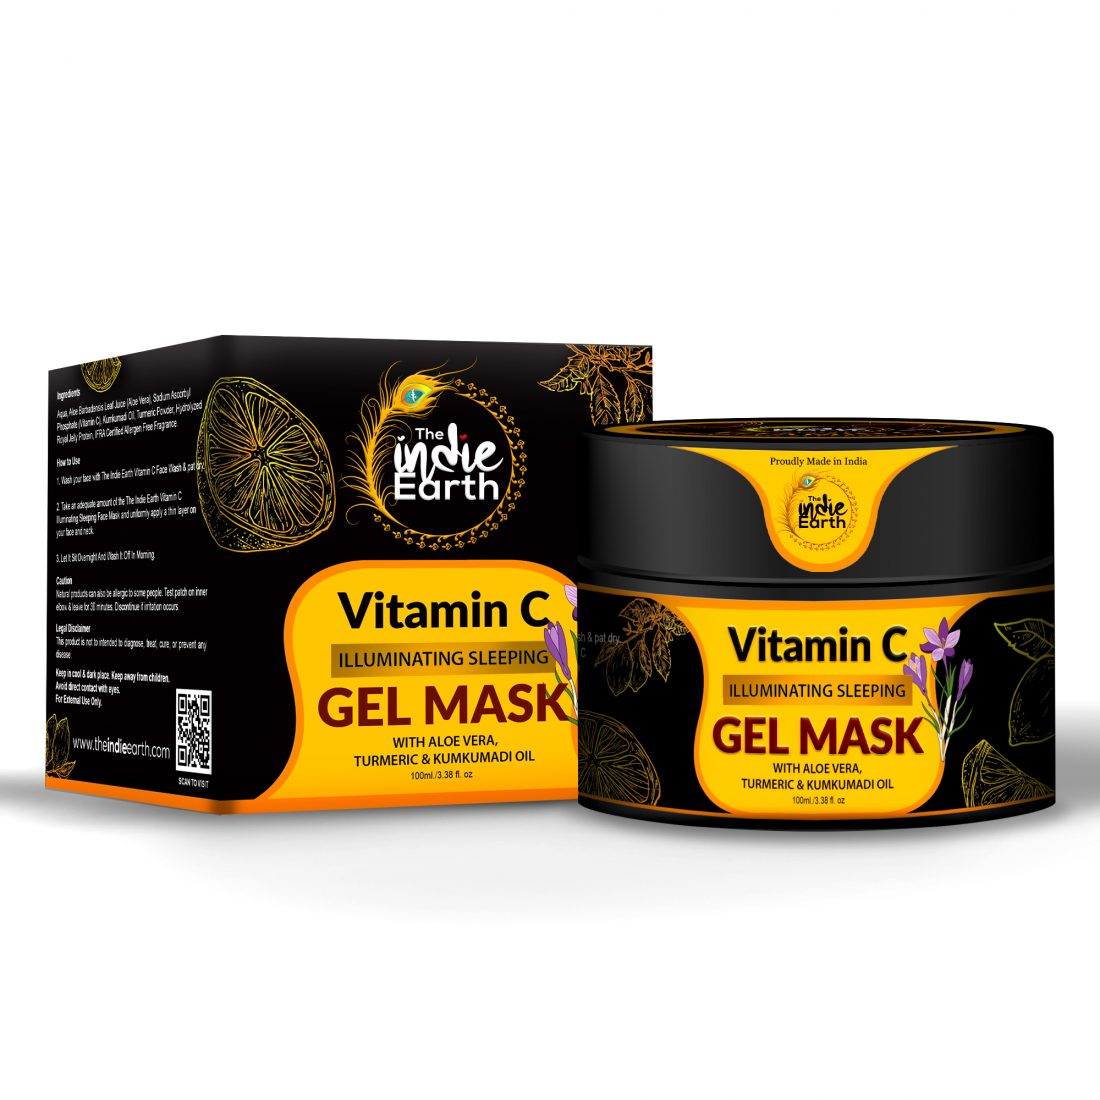 VITAMIN-C-GEL-MASK-Box-and-jar